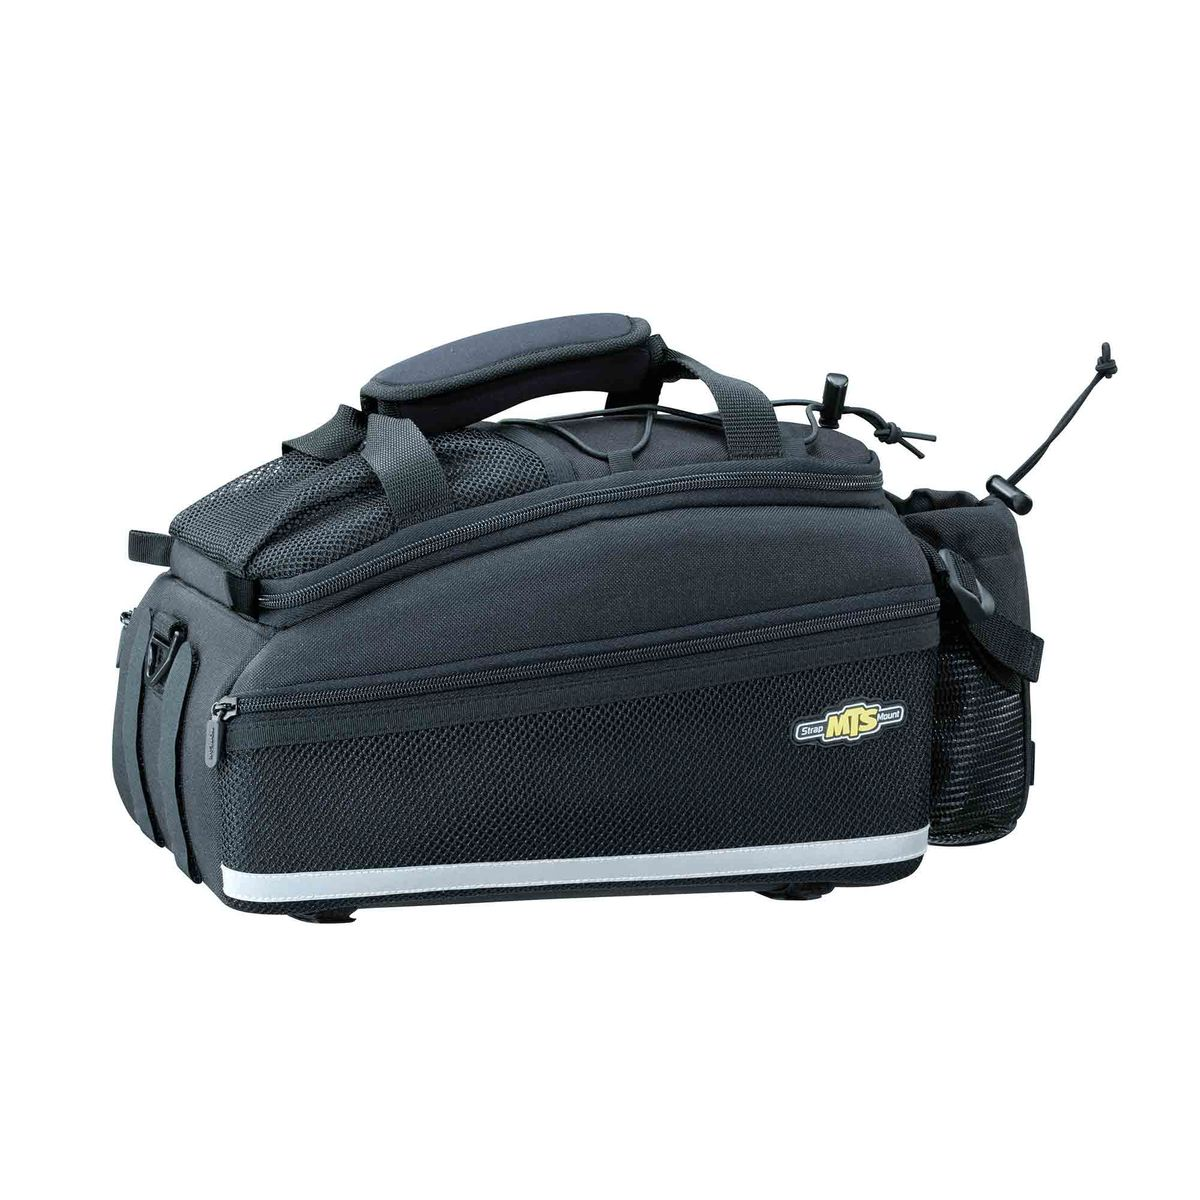 TrunkBag EX Strap Type bike bag